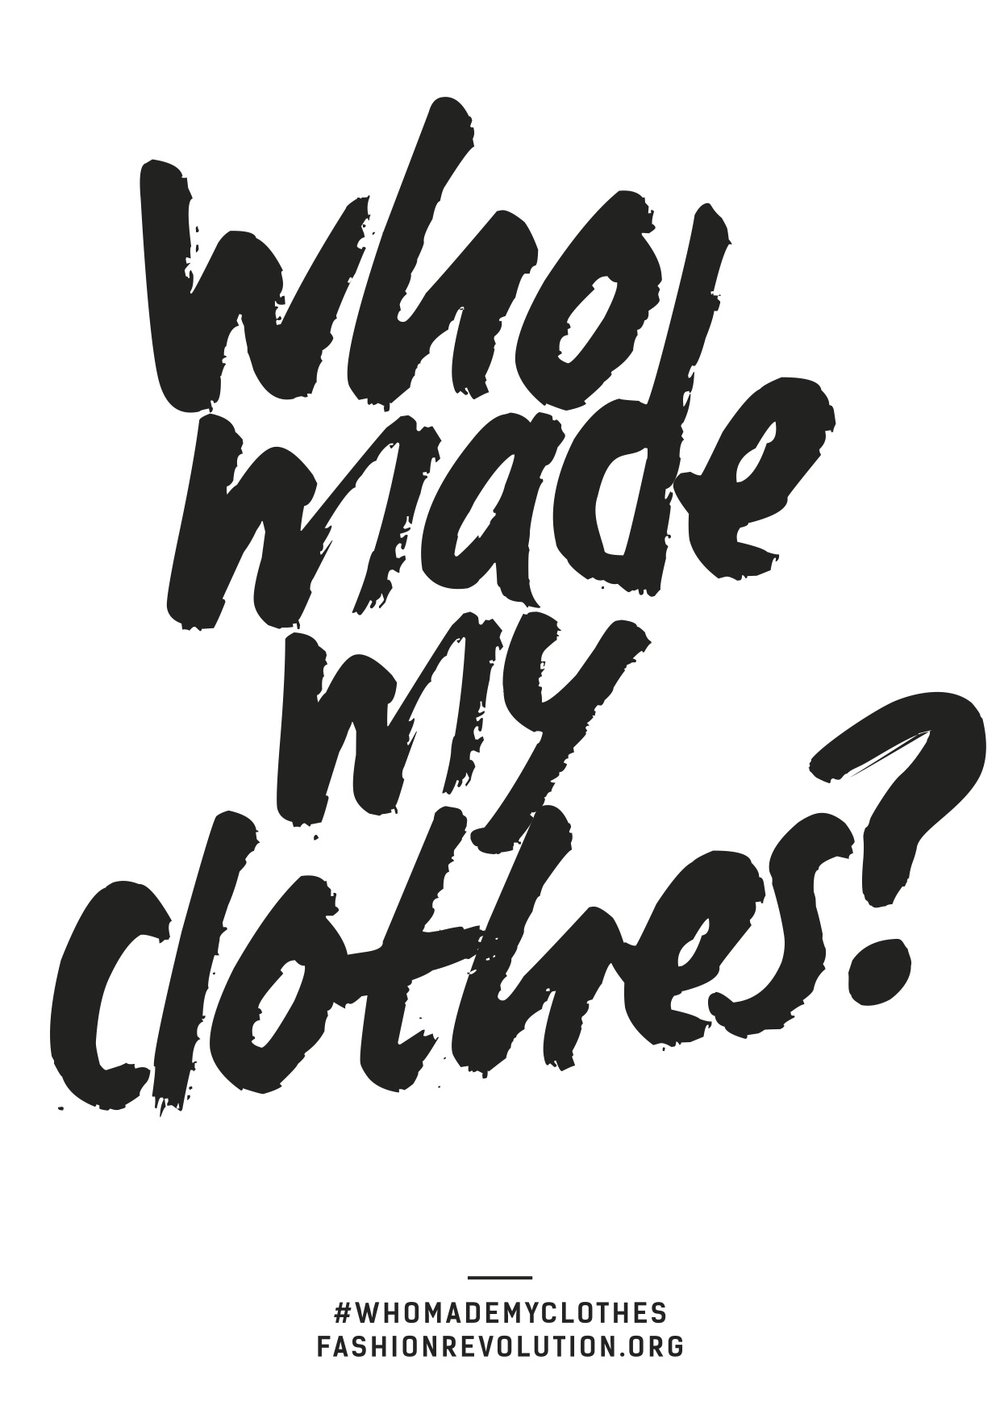 fashion-revolution-who-made-my-clothes